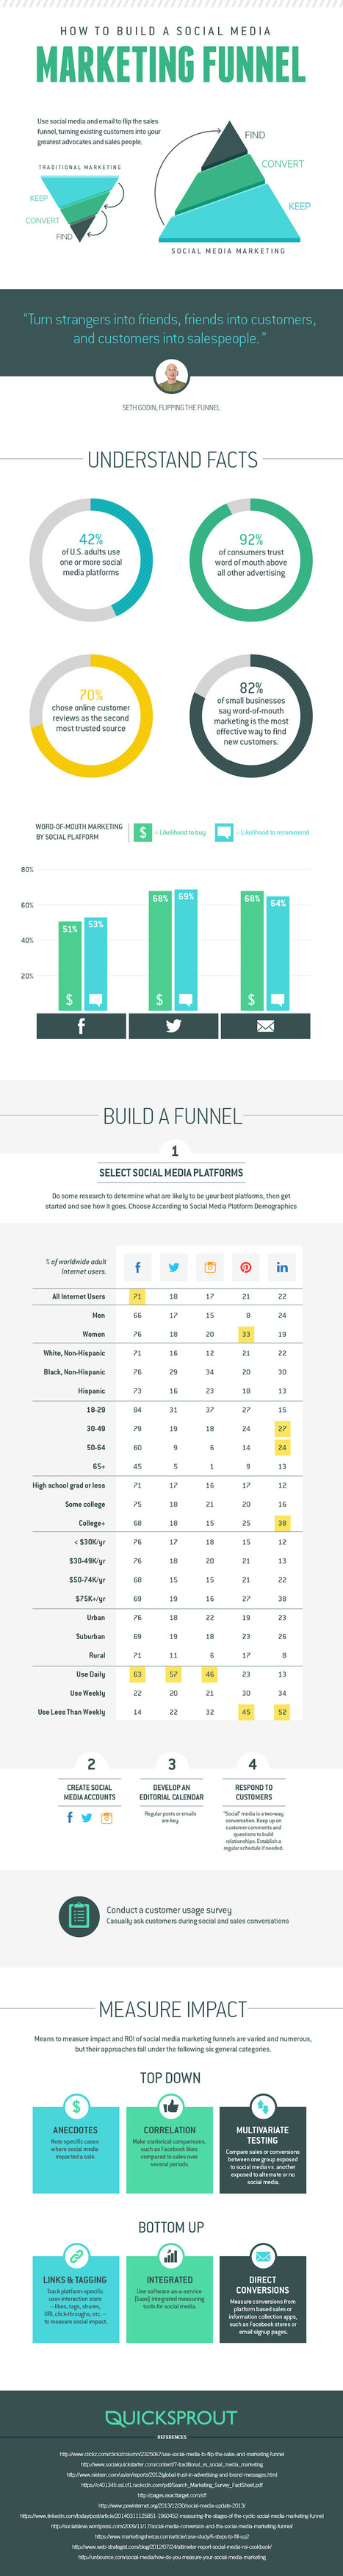 How To Build A Social Media Marketing Funnel [INFOGRAPHIC] | BI Revolution | Scoop.it